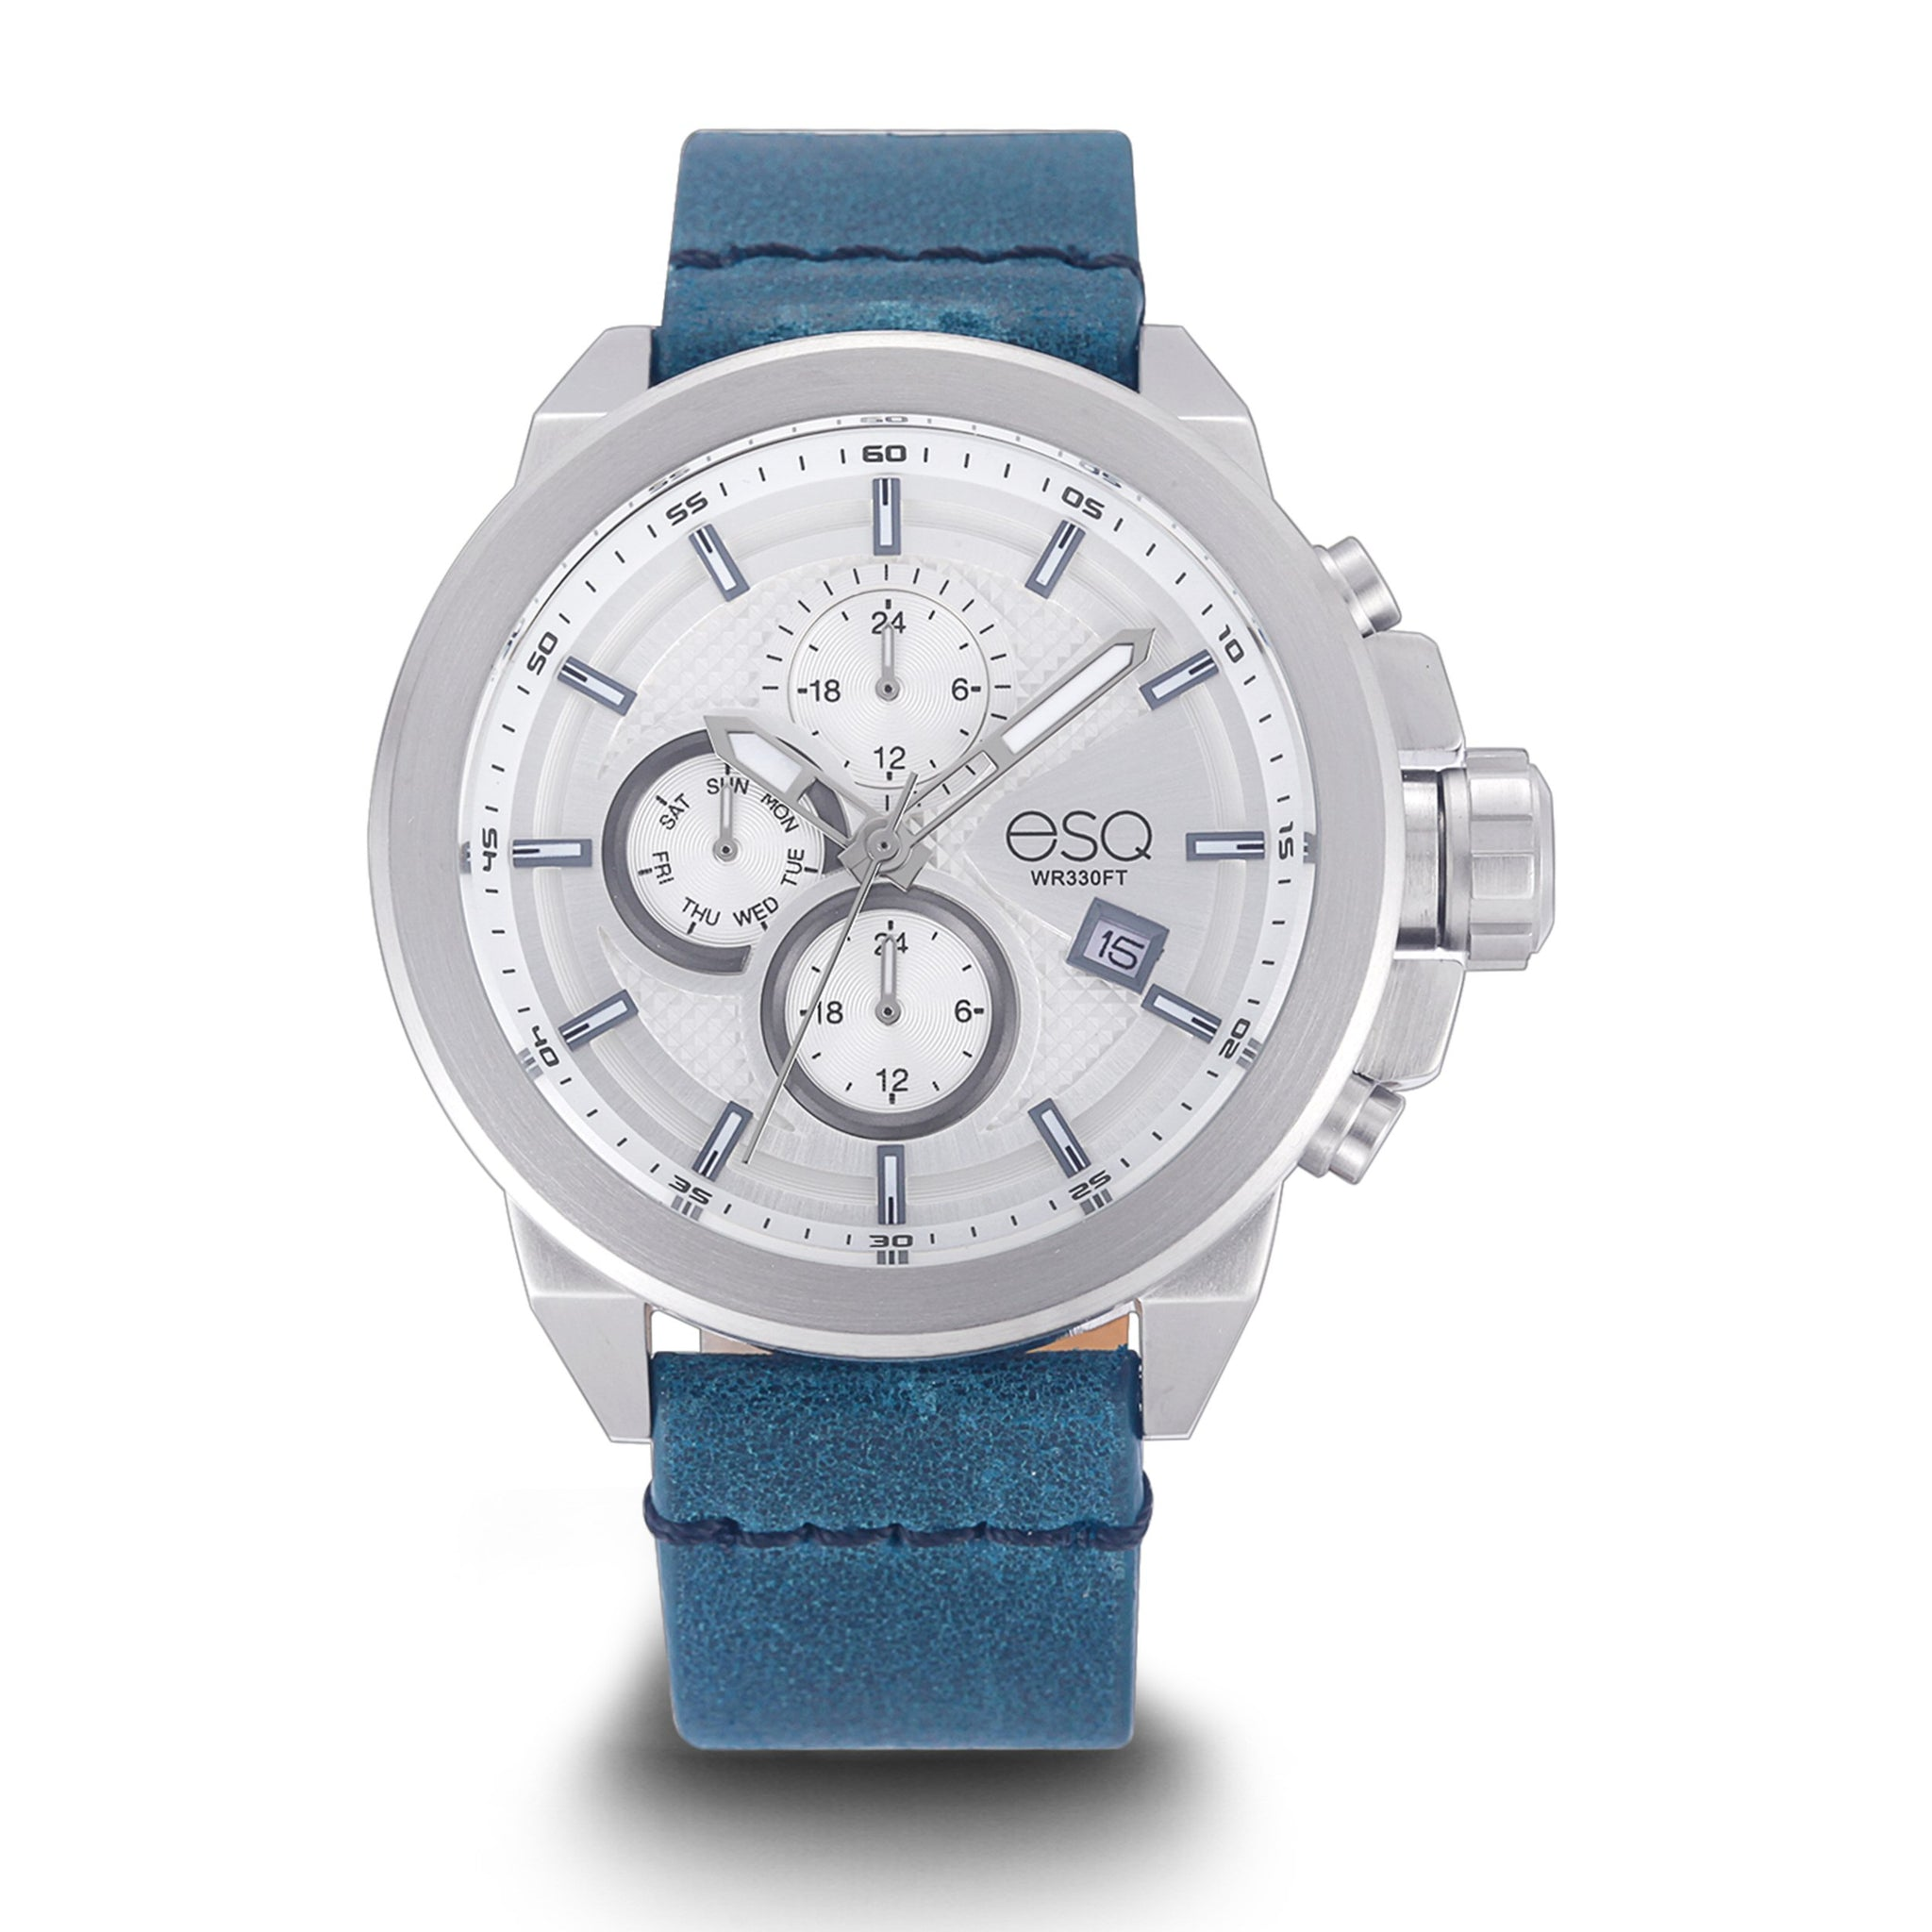 Men's ESQ0001 Multi-Function Stainless Steel Watch with White Dial and Blue Leather Strap